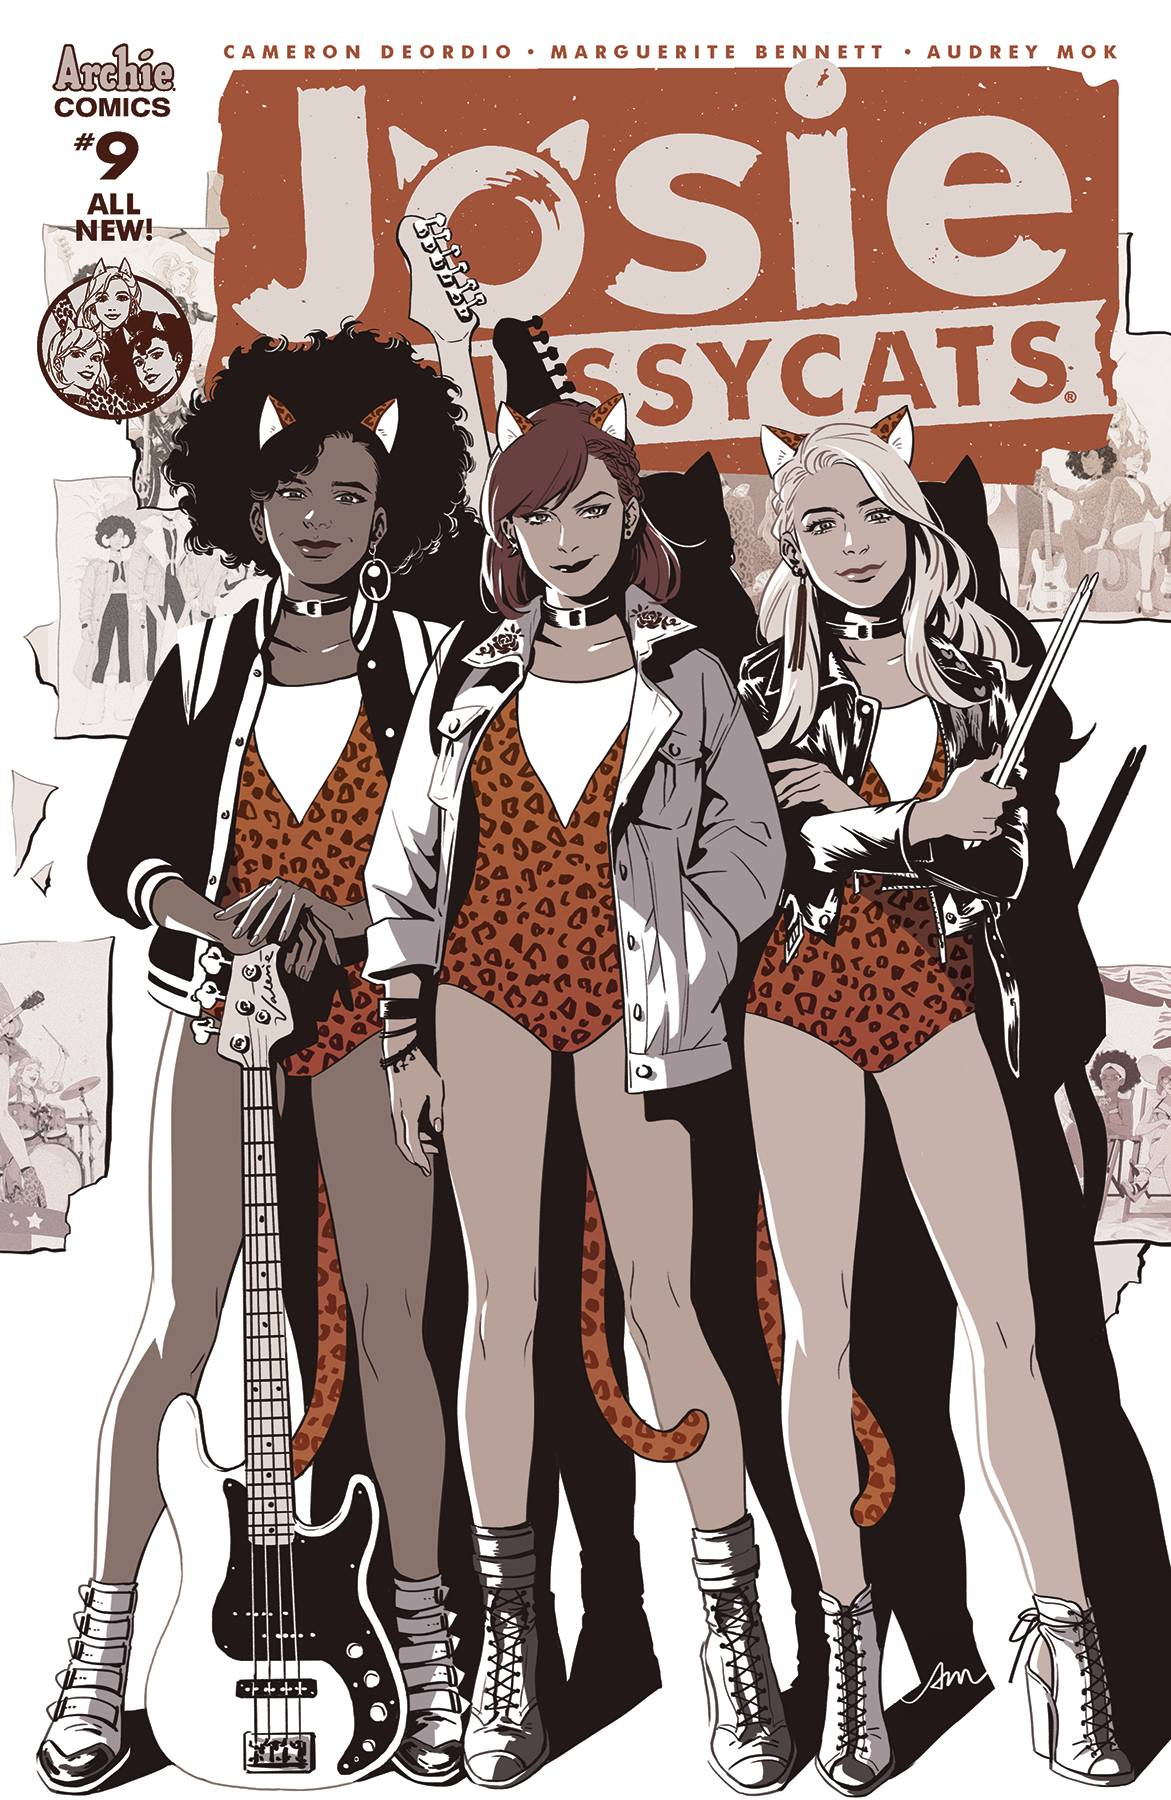 JOSIE AND THE PUSSYCATS#9